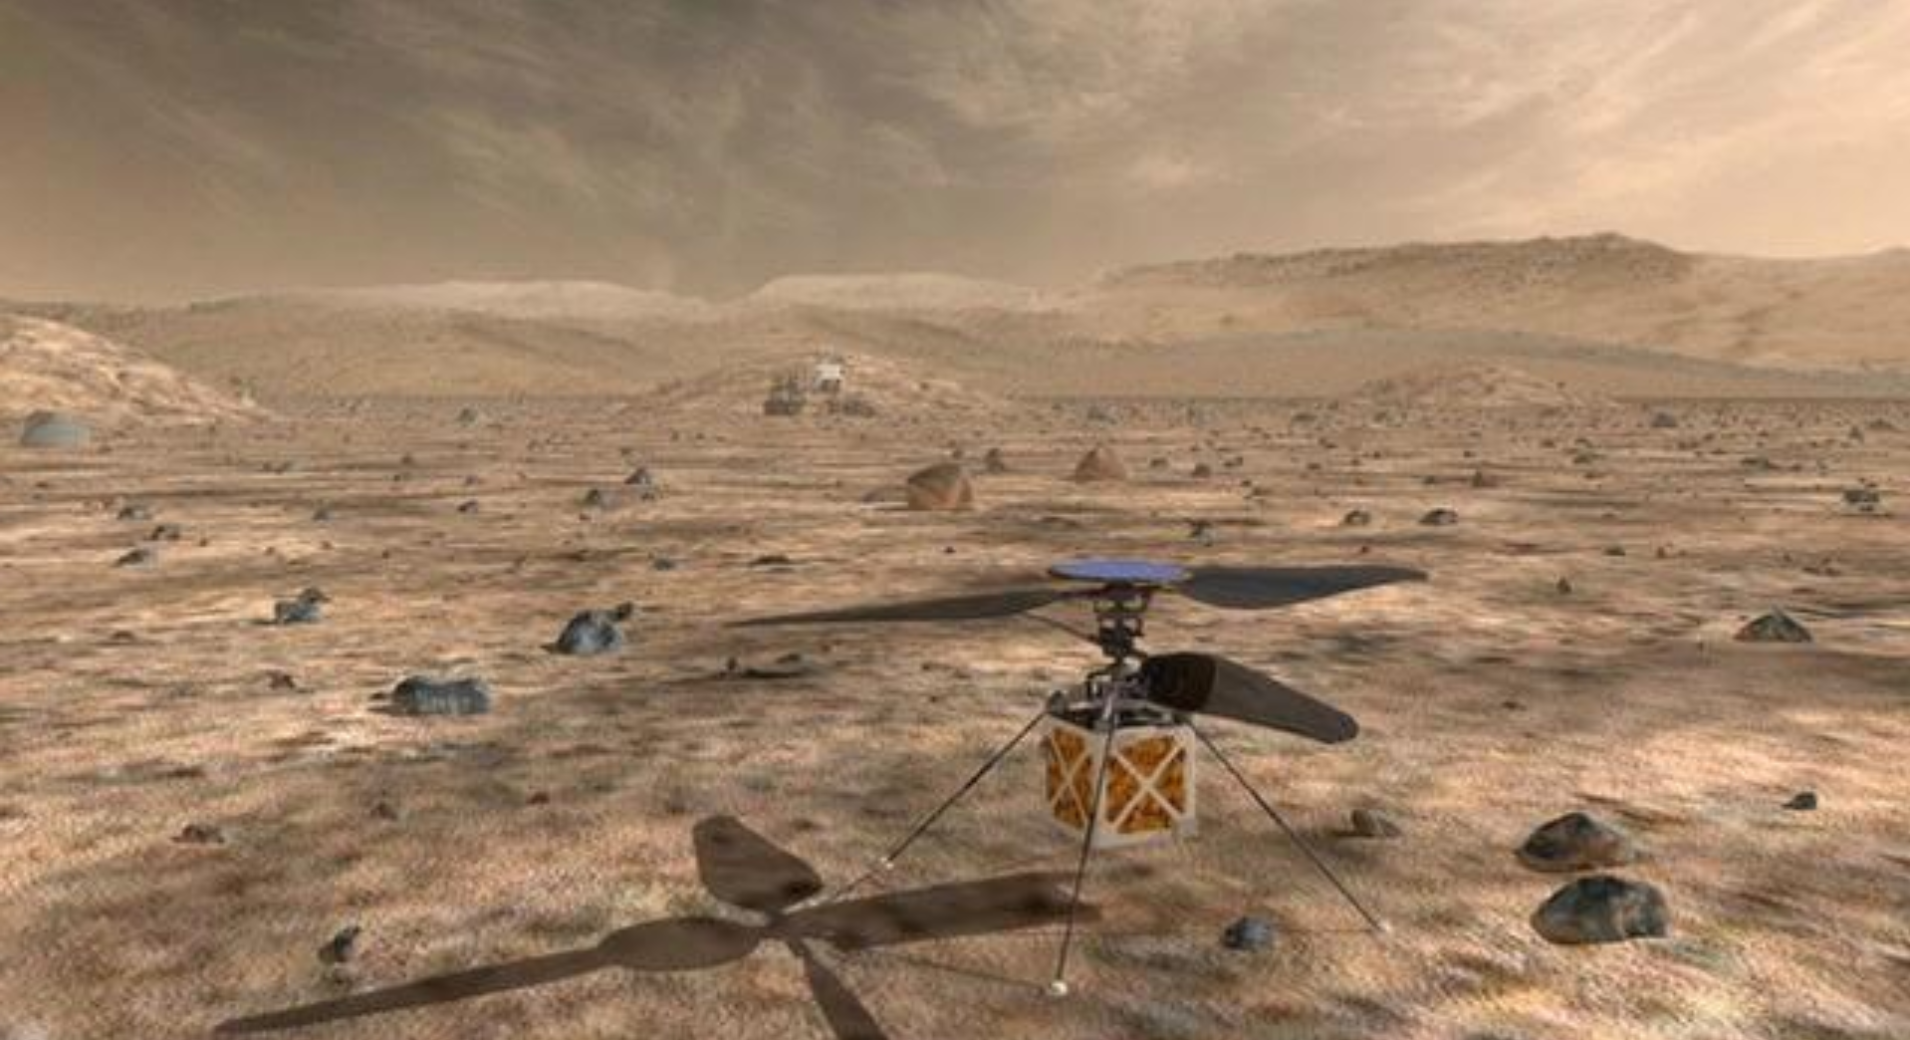 NASA wants to fly a helicopter on Mars